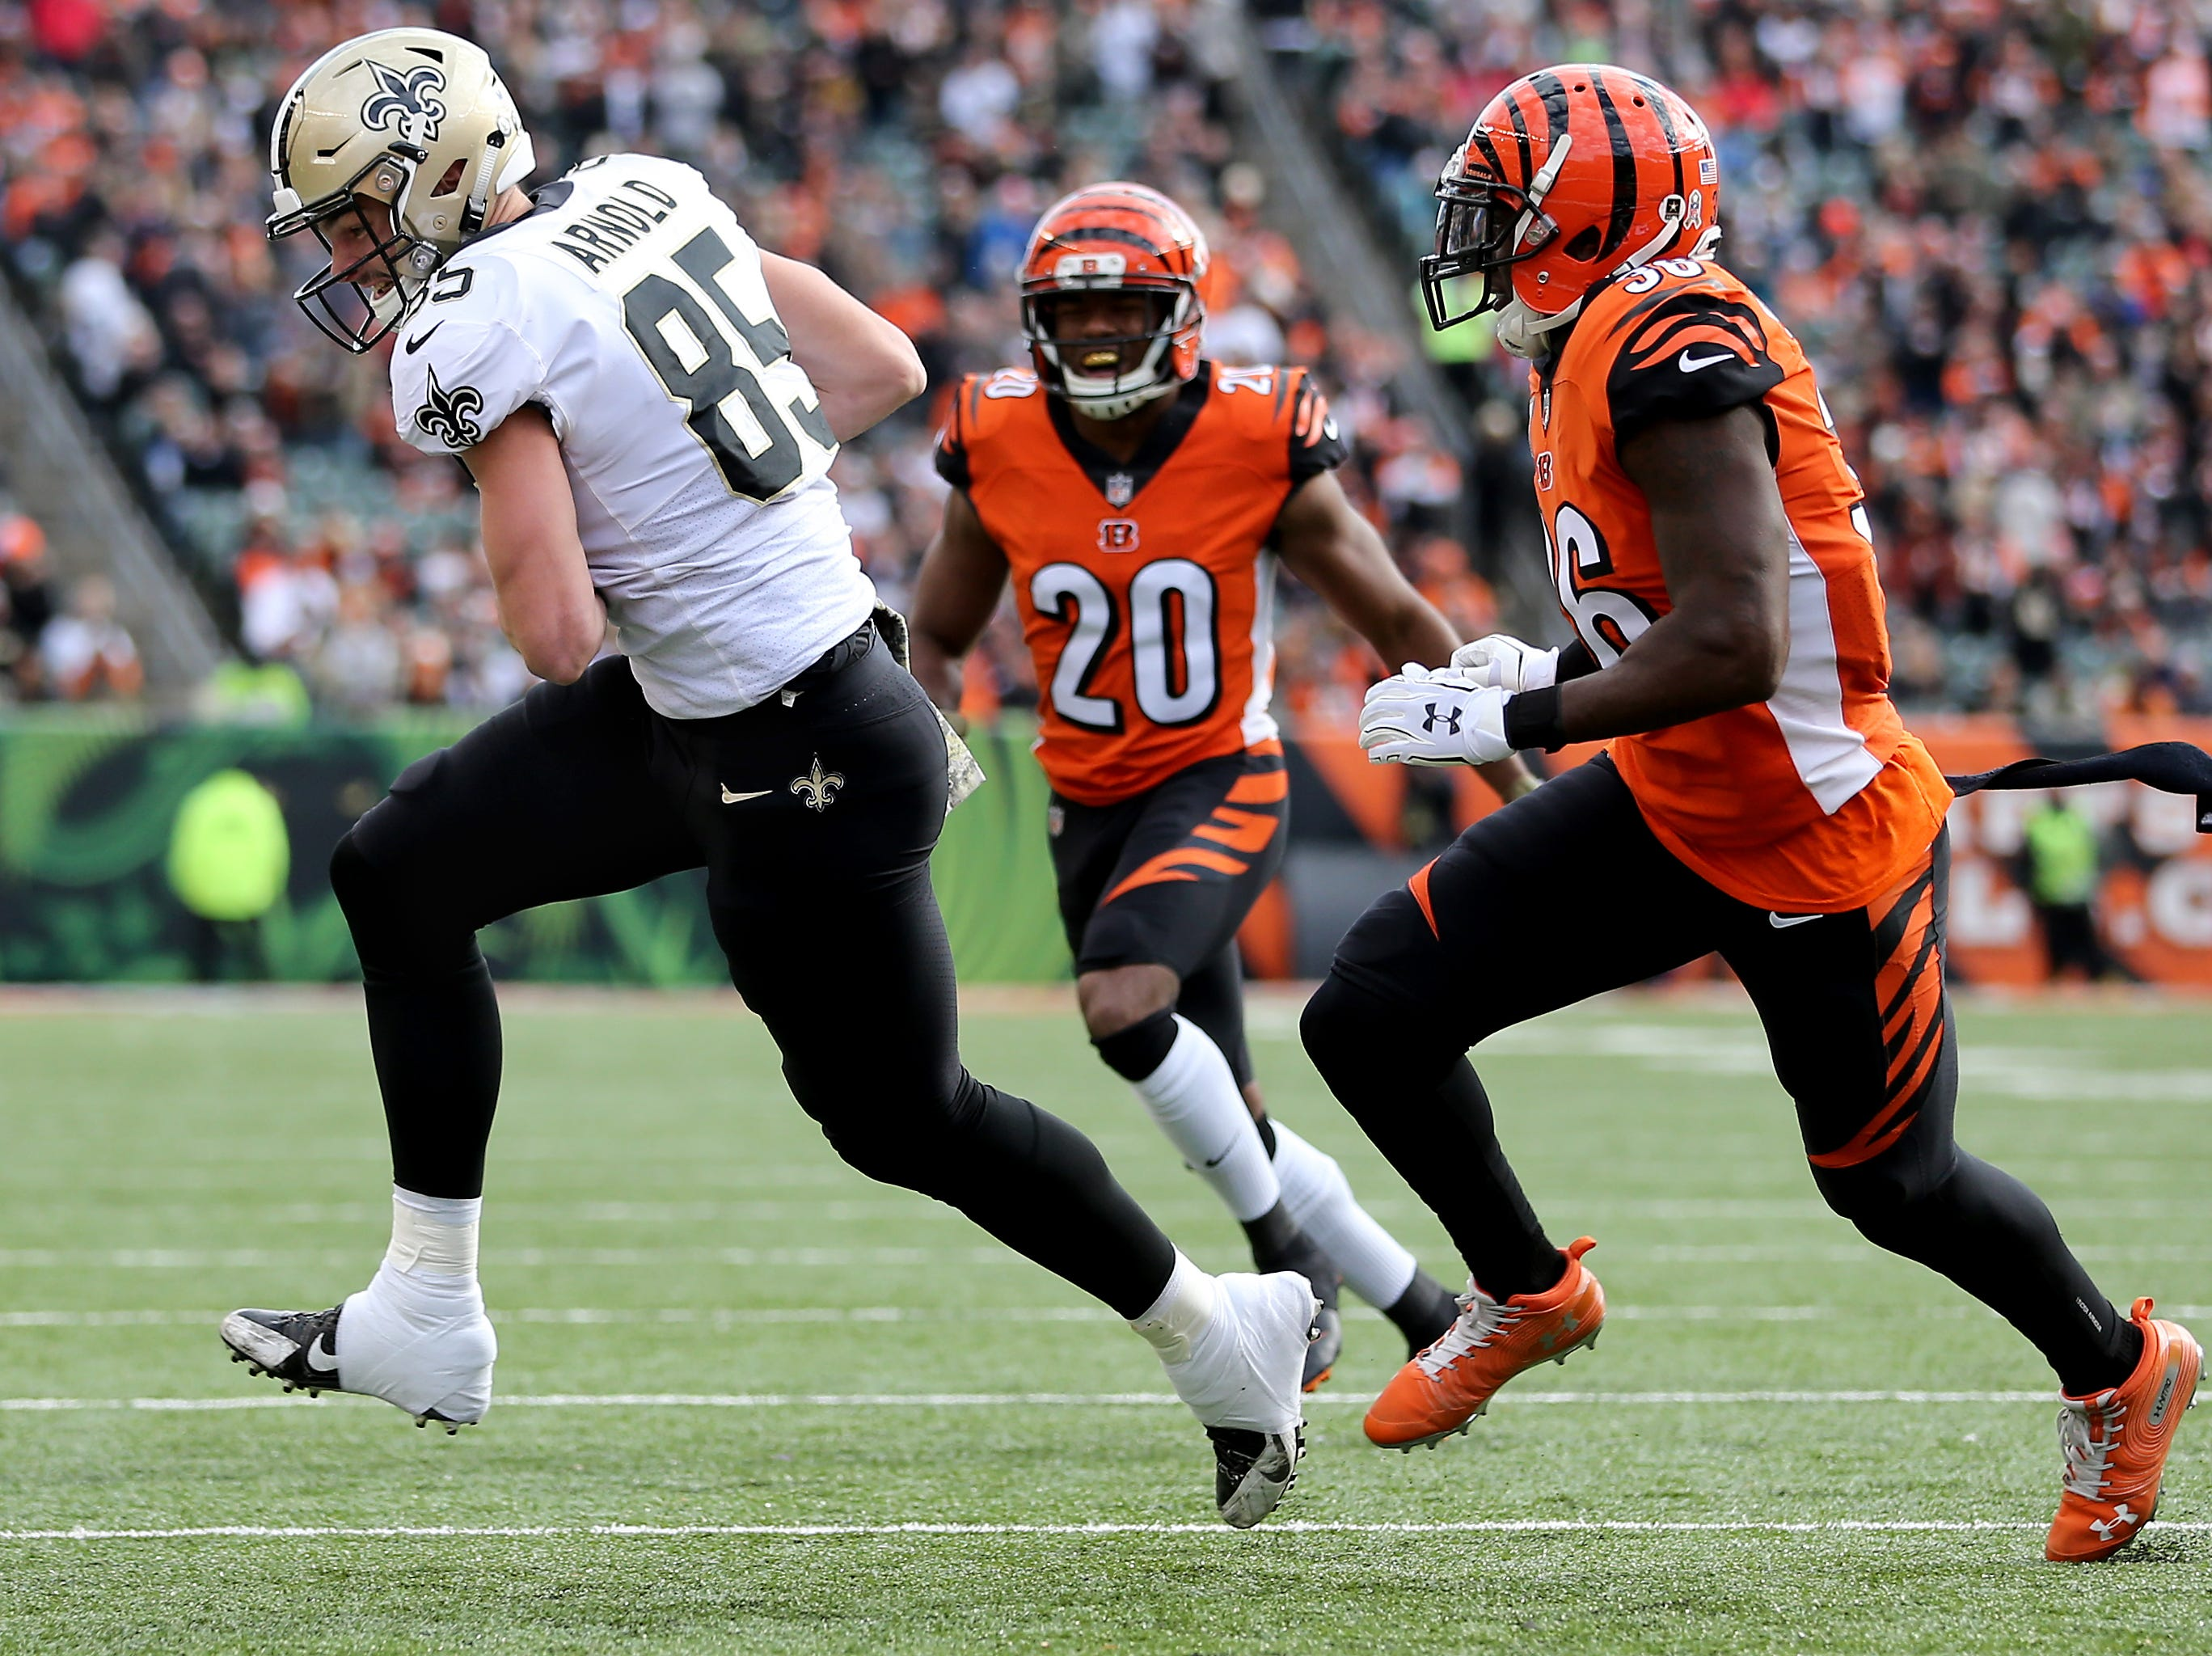 New Orleans Saints tight end Dan Arnold (85) completes a reception as Cincinnati Bengals strong safety Shawn Williams (36) in the second quarter of a Week 10 NFL game between the New Orleans Saints and the Cincinnati Bengals, Sunday, Nov. 11, 2018, at Paul Brown Stadium in Cincinnati.